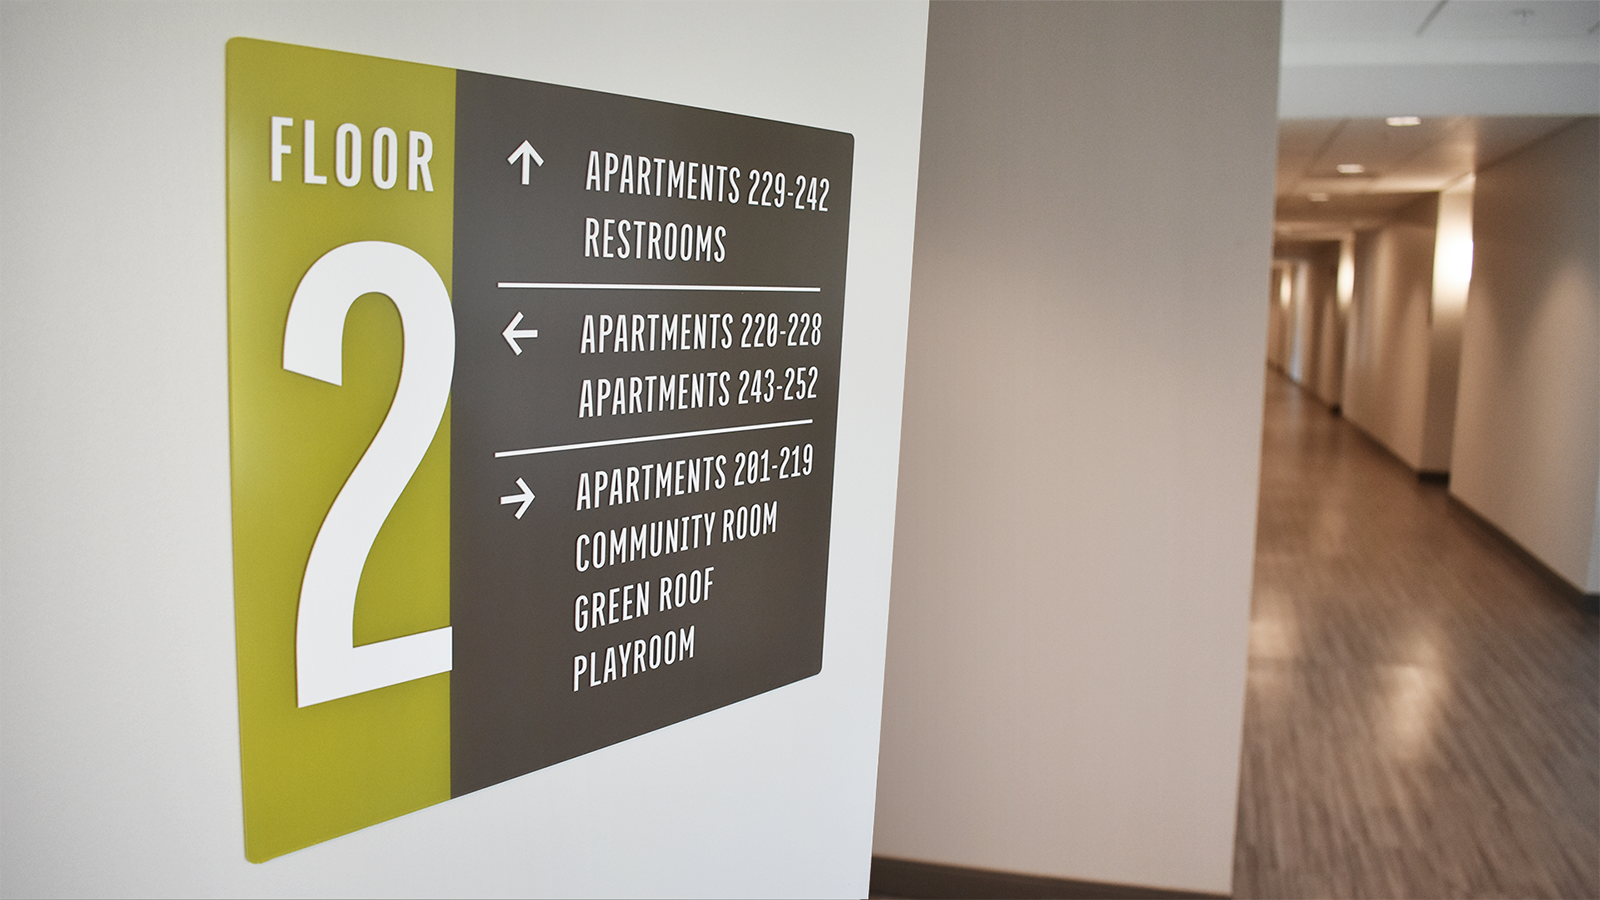 A floor directory in the Forge Apartments acts as part of their interior wayfinding system